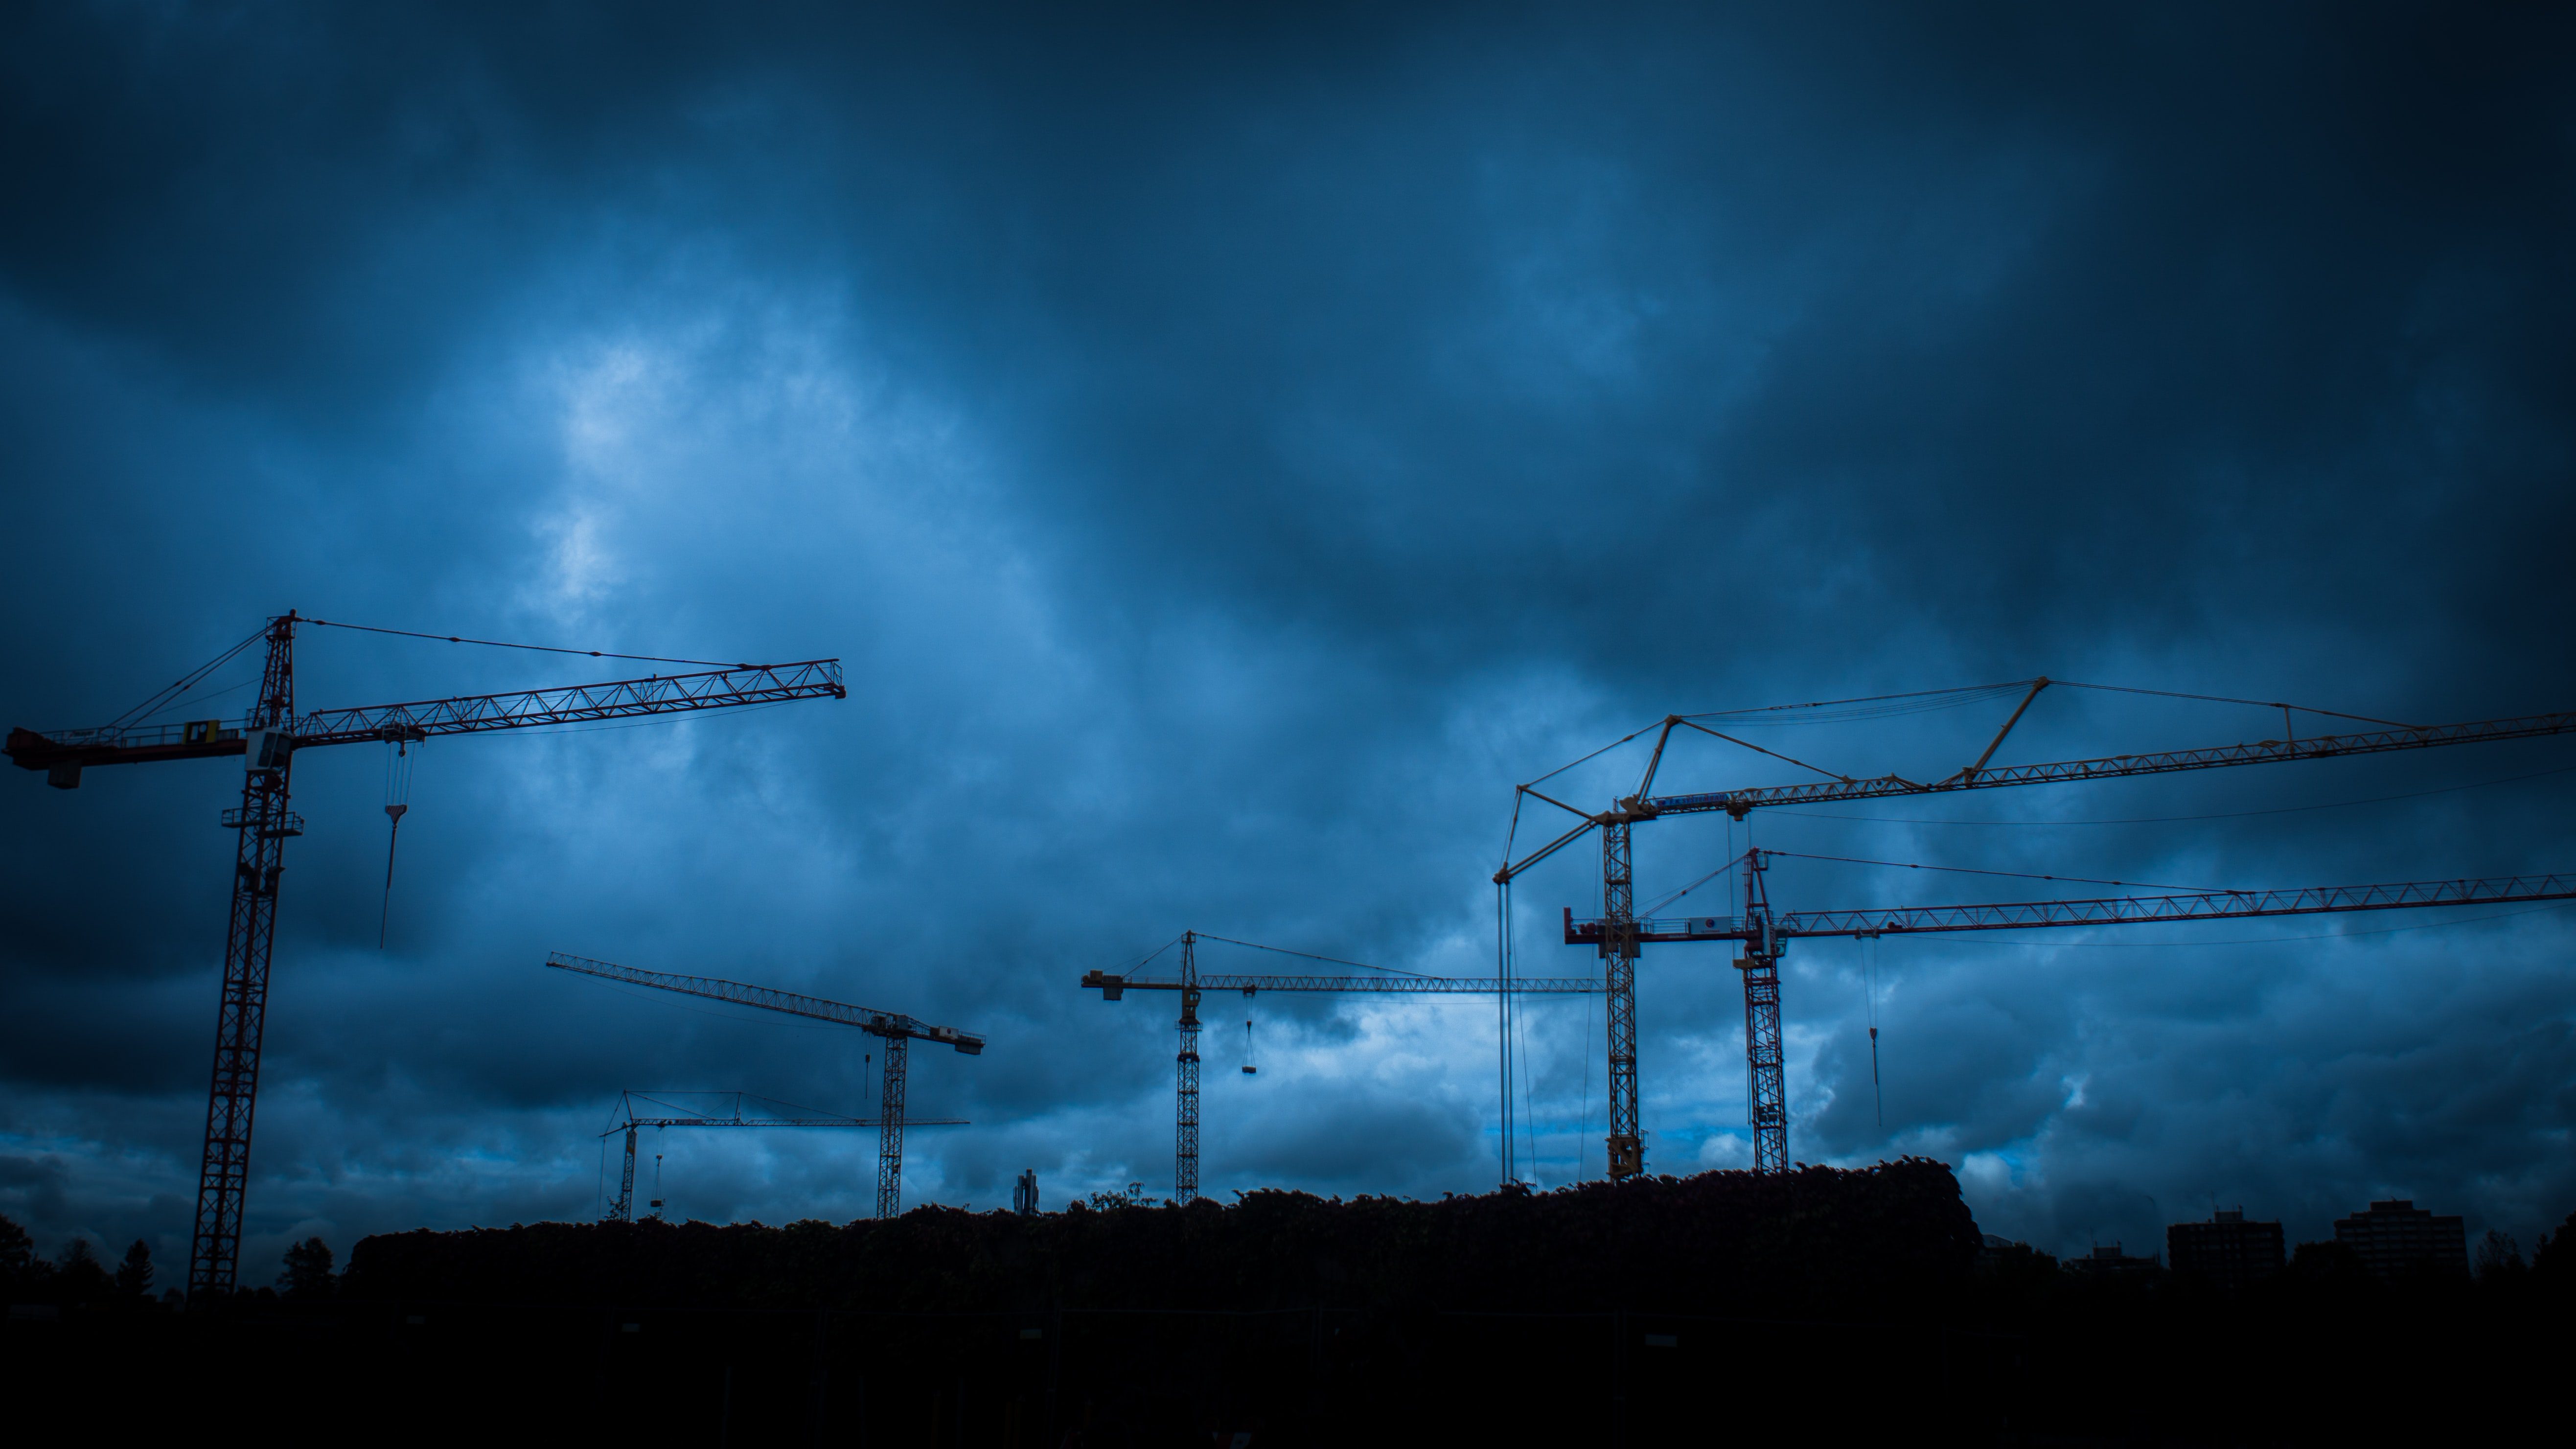 metal crane towers during cloudy day